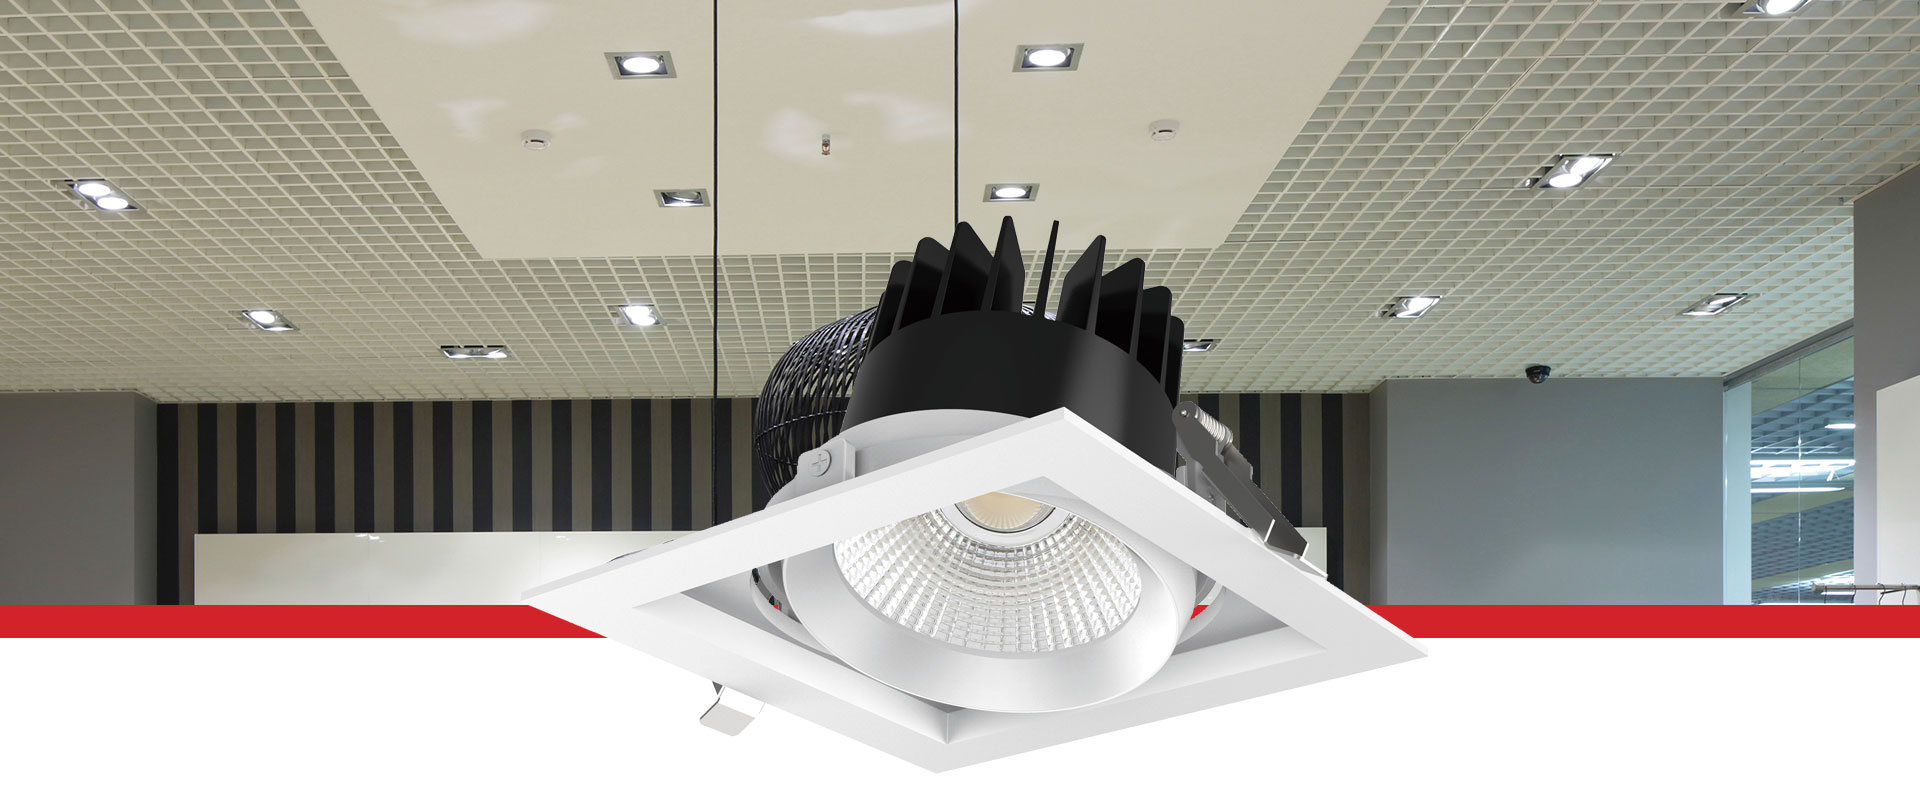 Verona Modular Tiltable Downlight